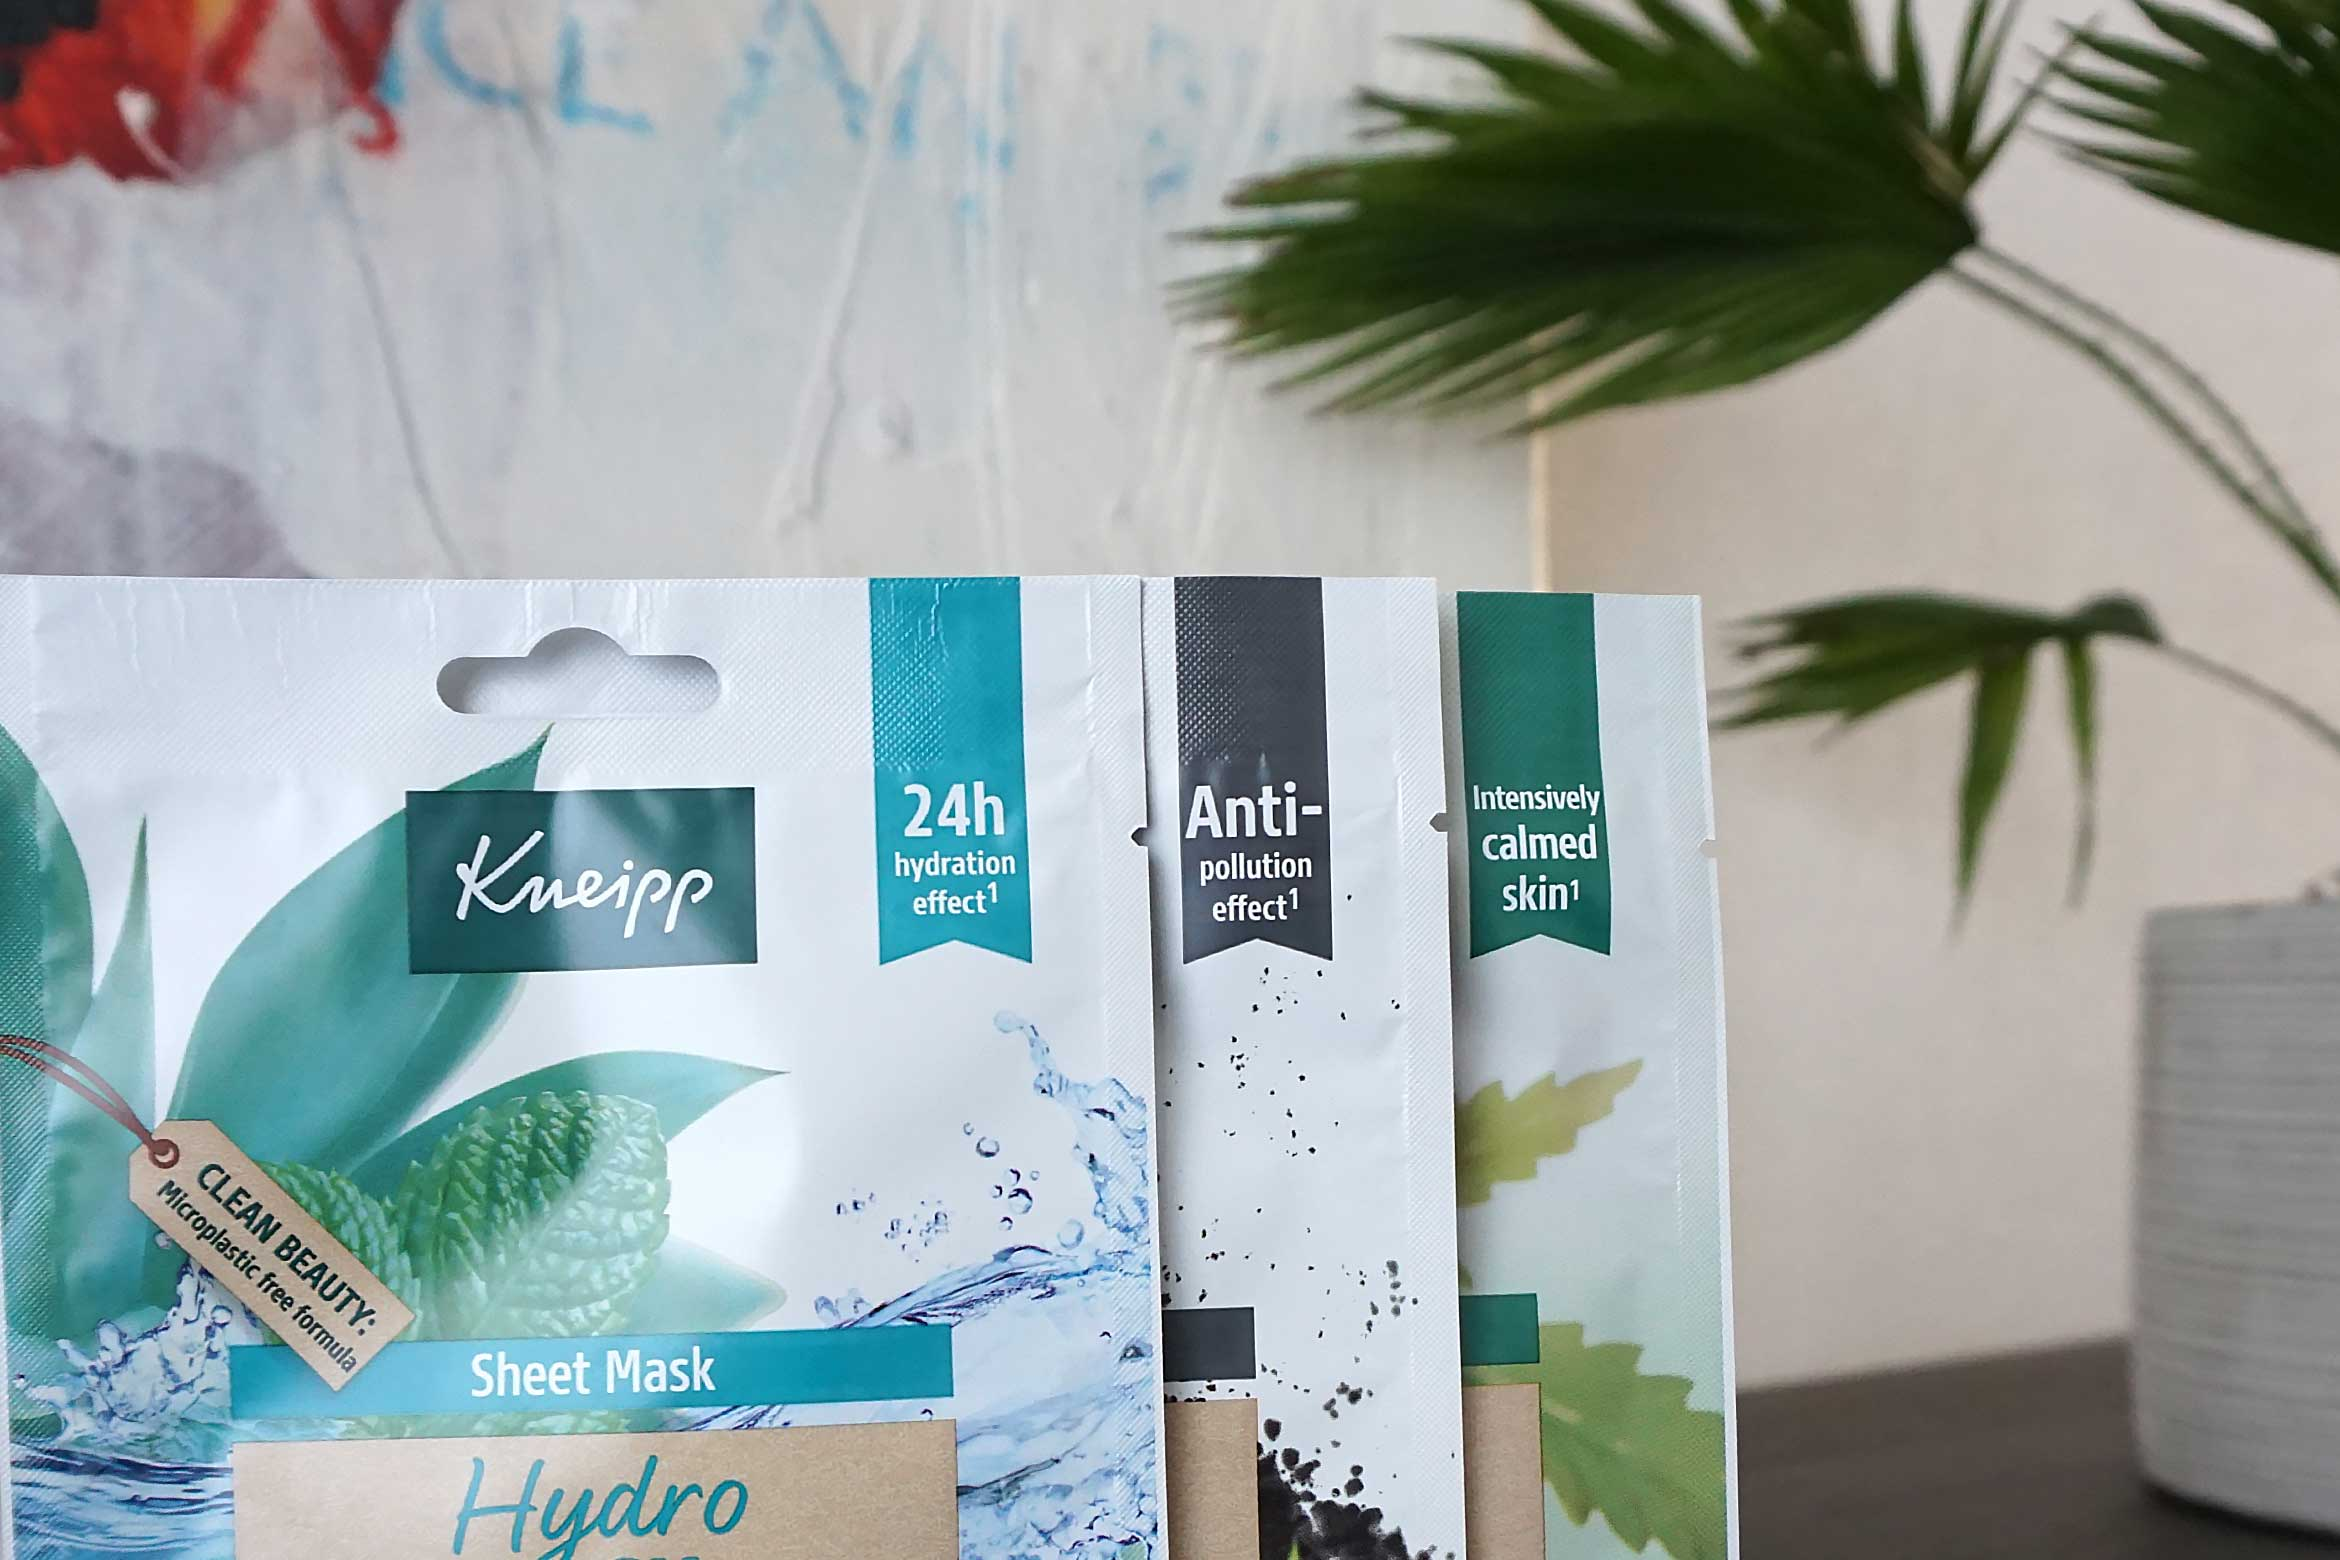 kneipp sheet mask review-1